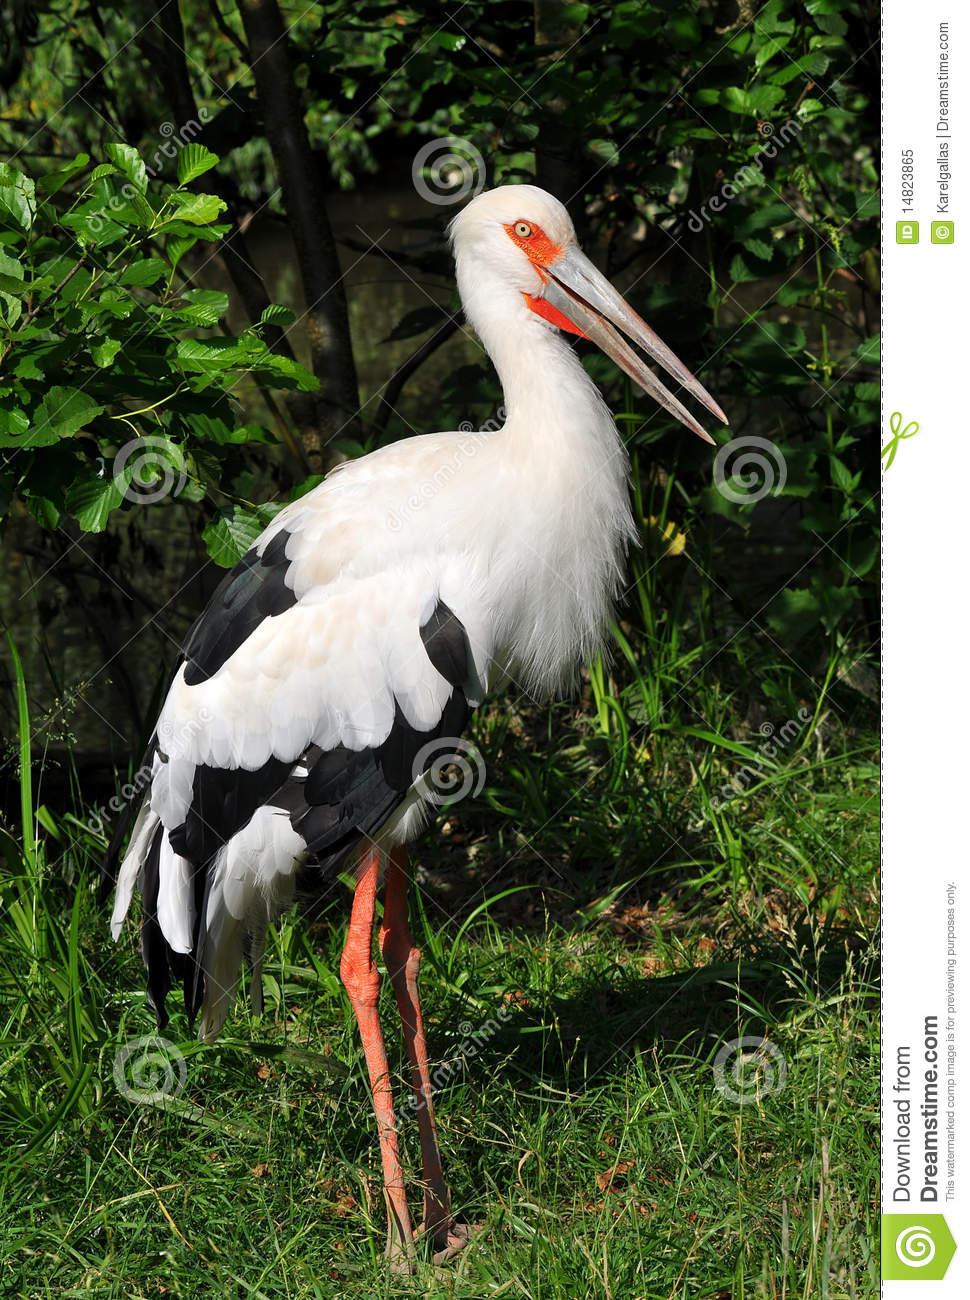 Maguari Stork clipart #20, Download drawings